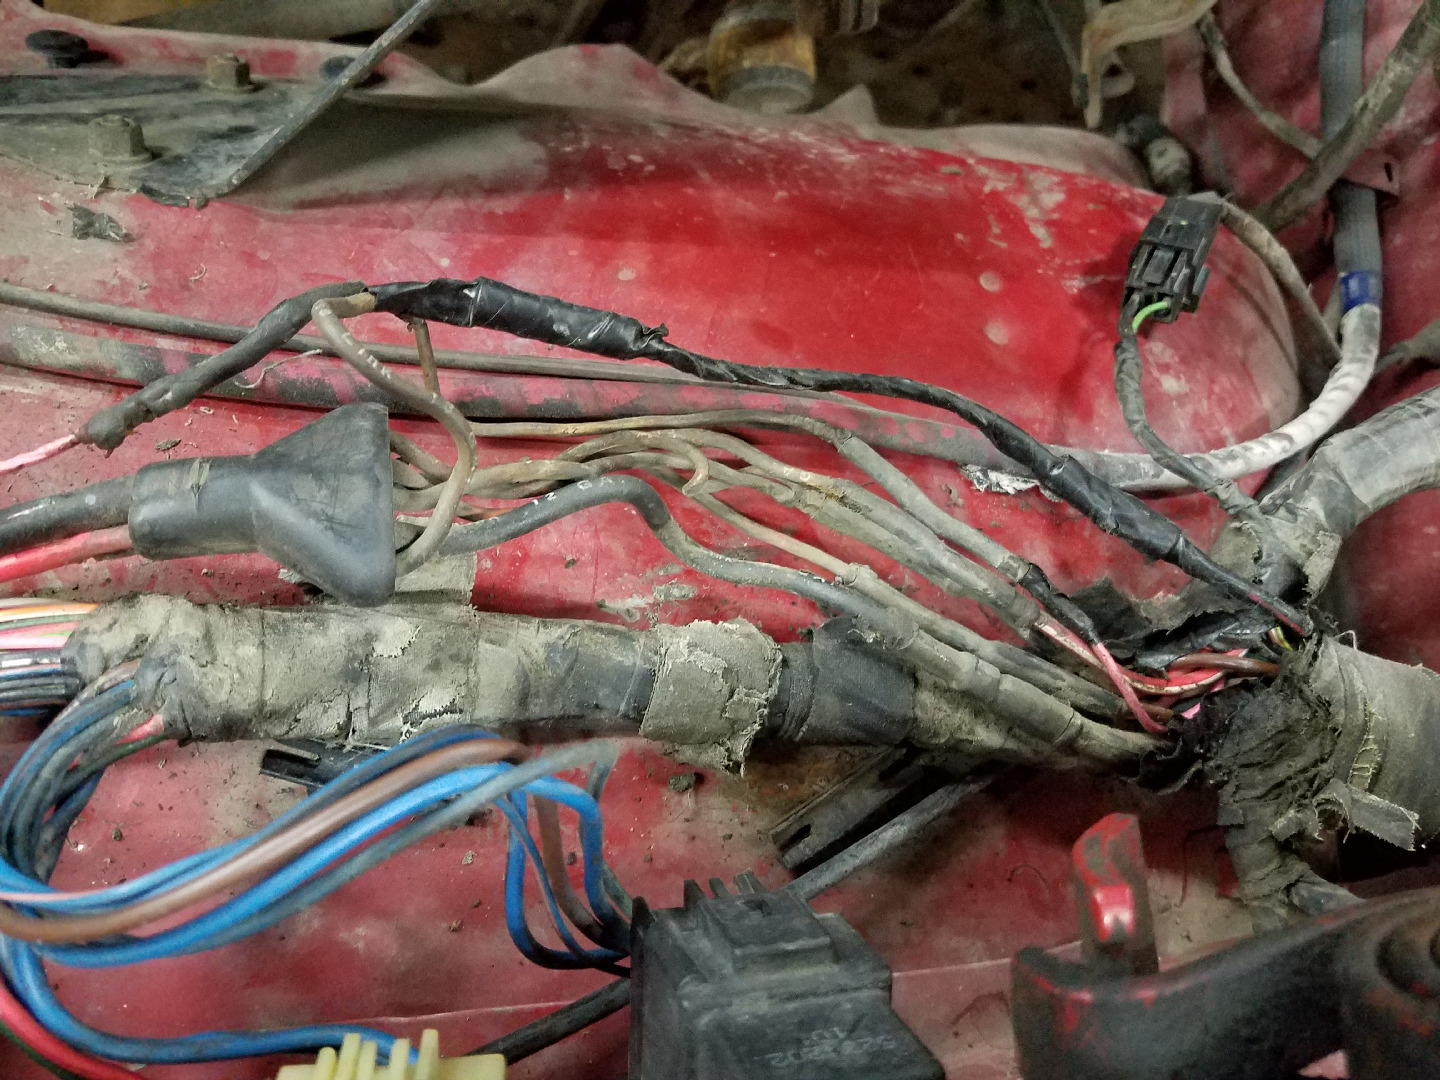 Fusible Link Sizes Dodge Ram Ramcharger Cummins Jeep Durango 1990 Wiring Diagram The Links Looked Like Before I Screwed Up And Burnt Out One It Had Apparently Heater Feed Burn As Well